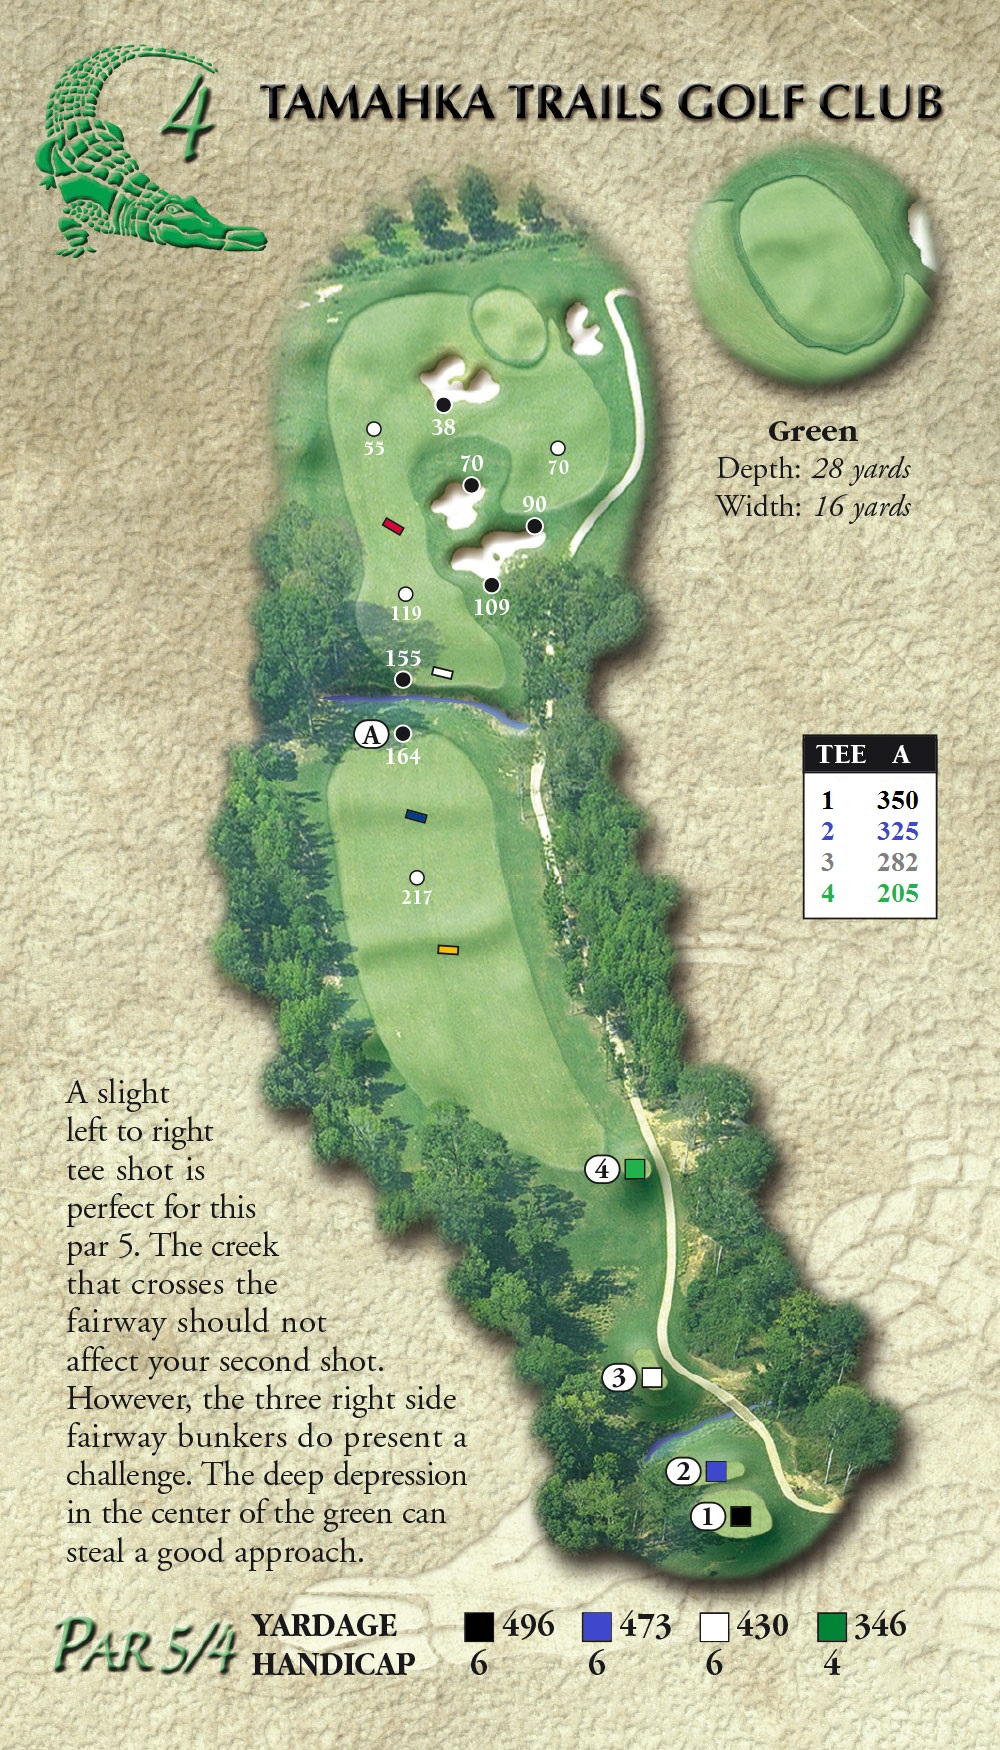 golf course layout maps, golf green maps, golf courses map of us, golf yardage book, on golf course maps with yardage